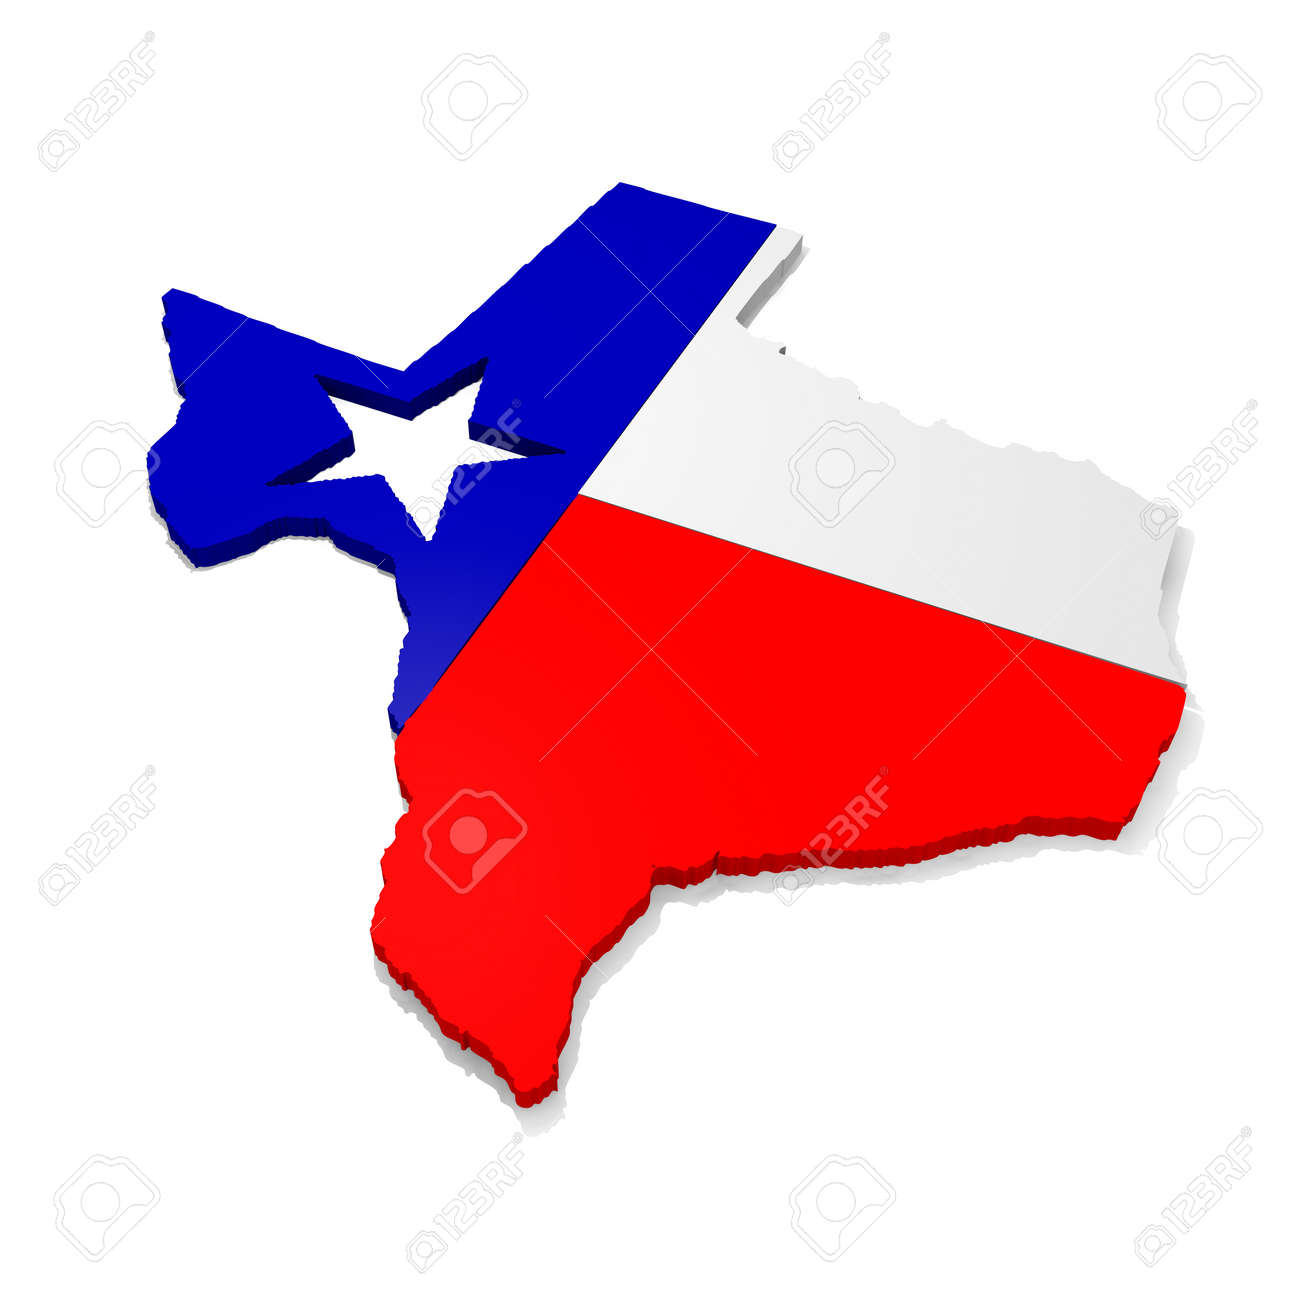 3d Map Of Texas.3d Map Of Texas